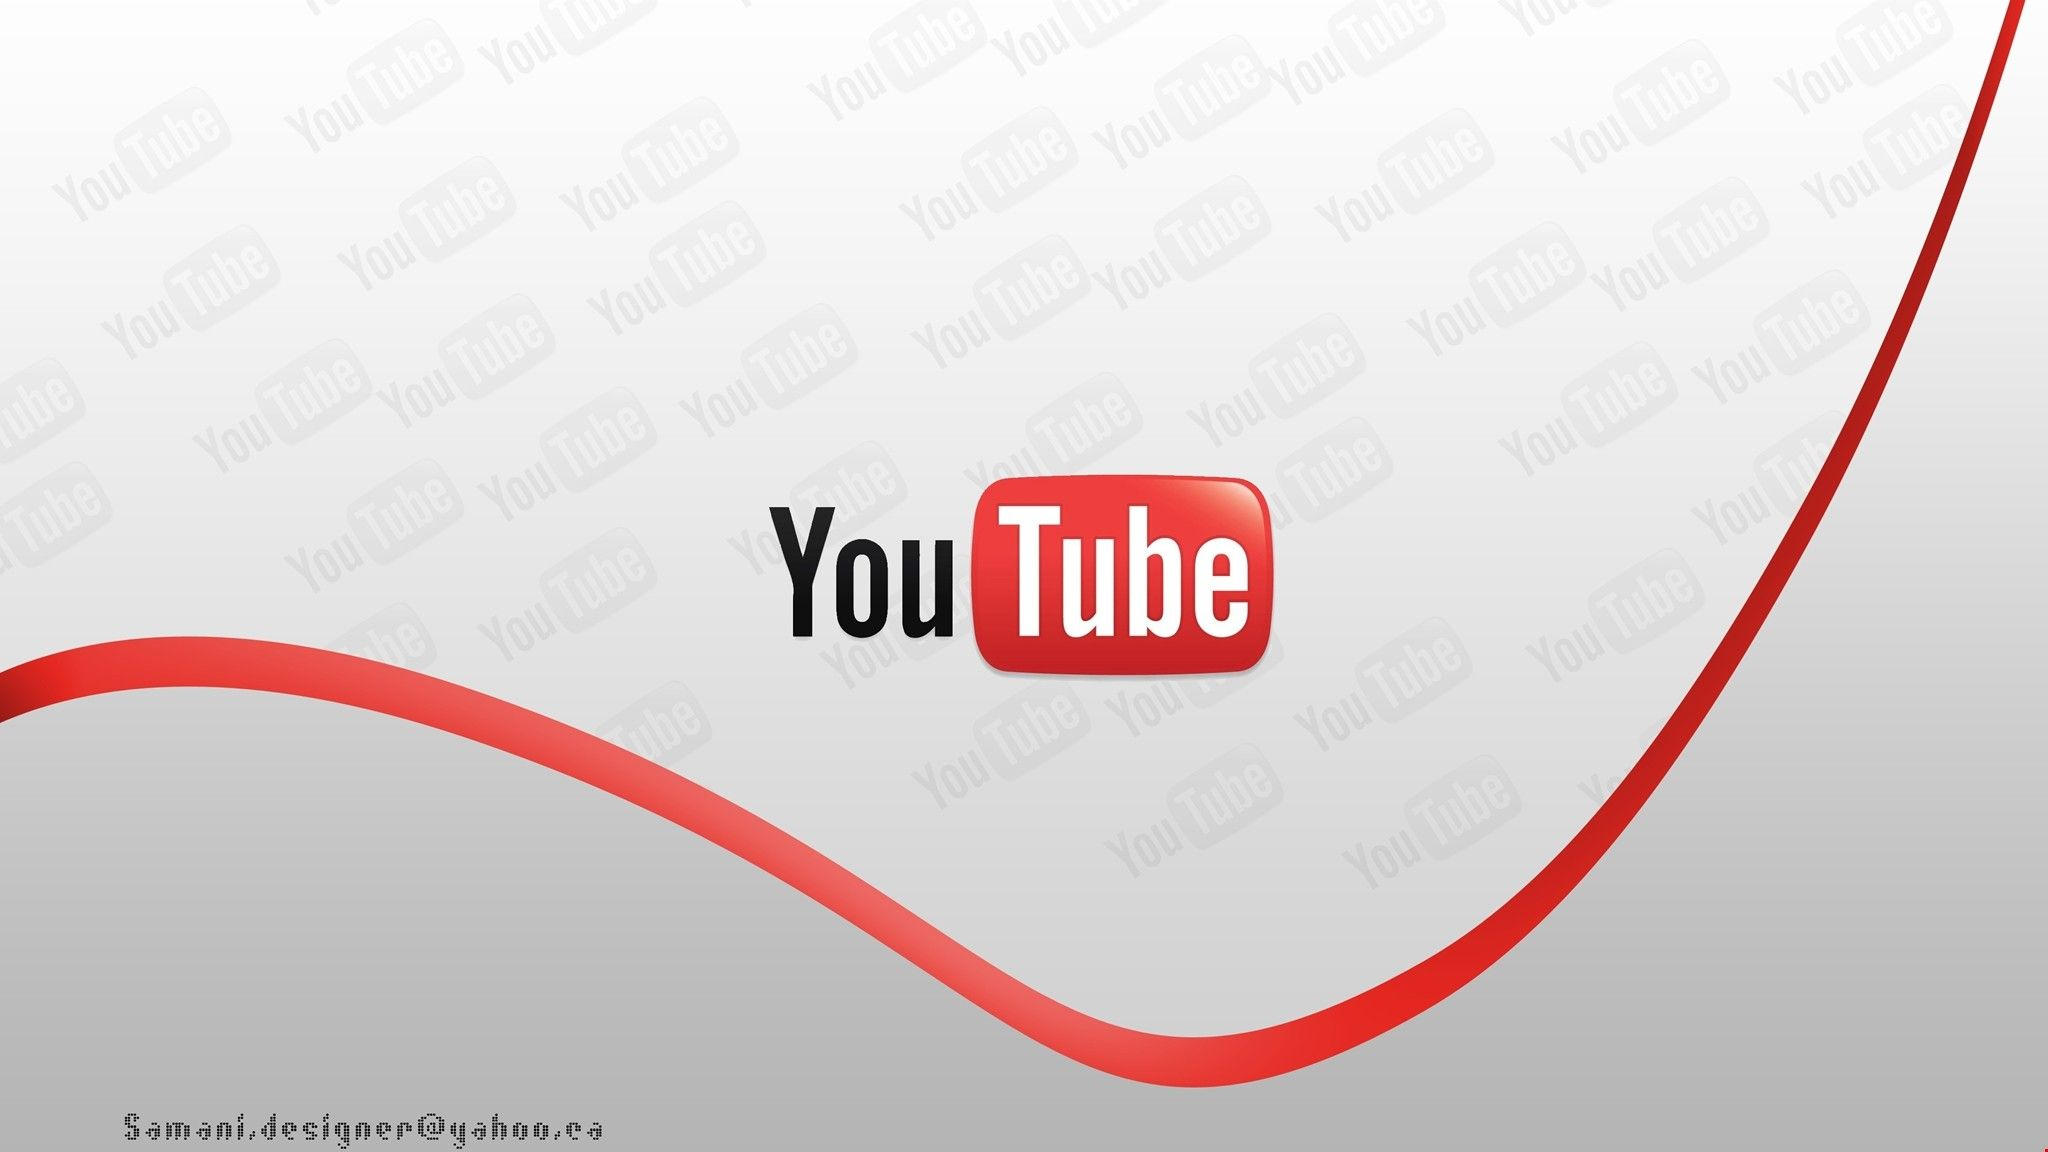 77 2048x1152 Youtube Wallpapers On Wallpaperplay Youtube